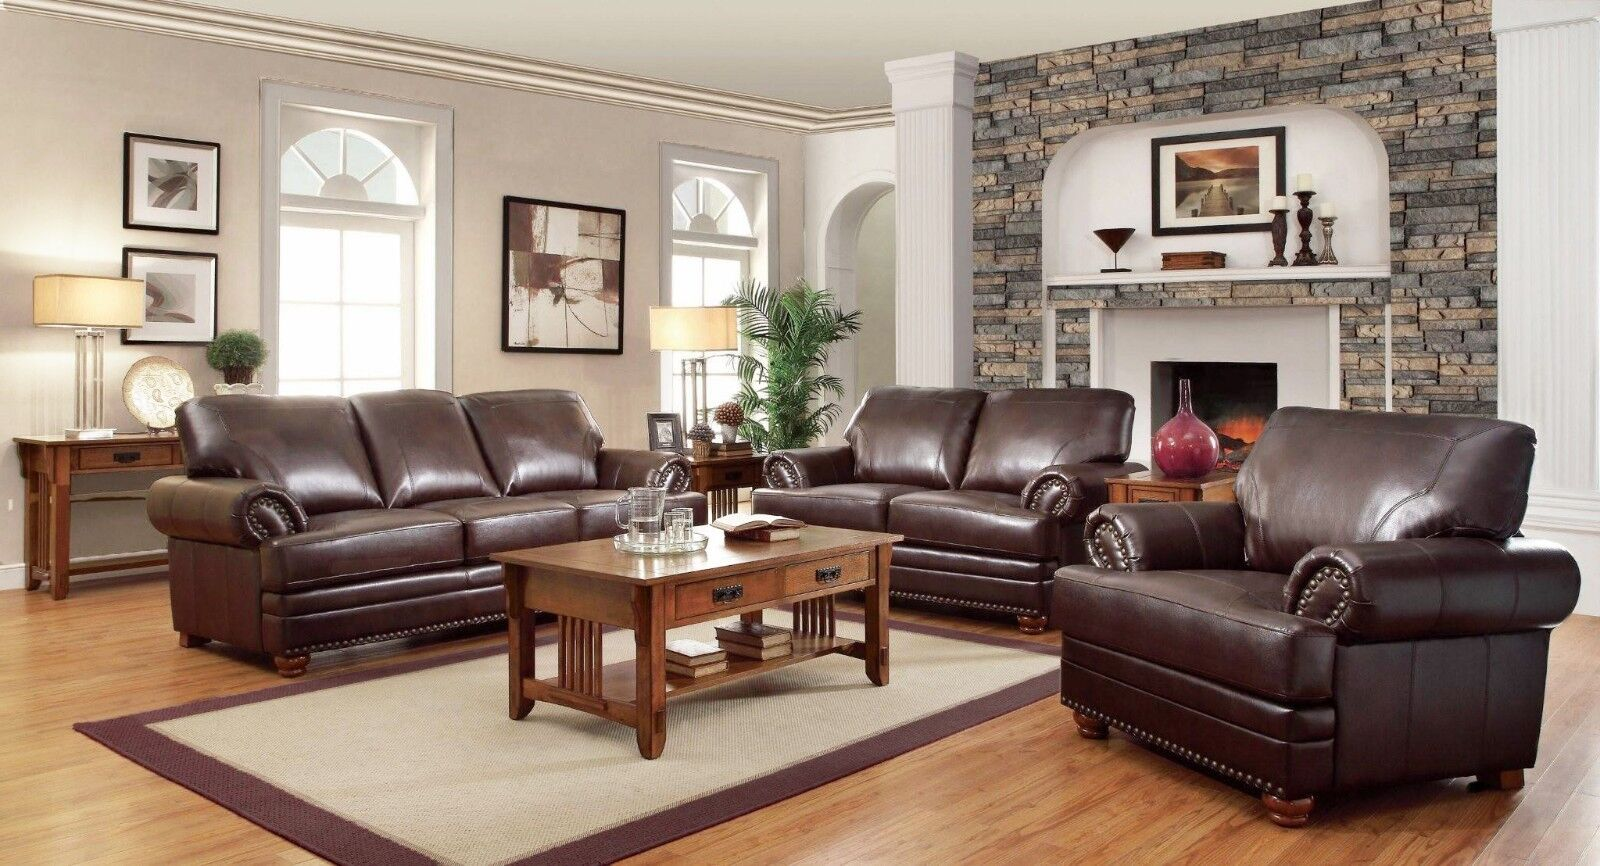 Superbe Details About Traditional Brown Bonded Leather Sofa Loveseat Chair U0026 Table  4pc Living Room Set